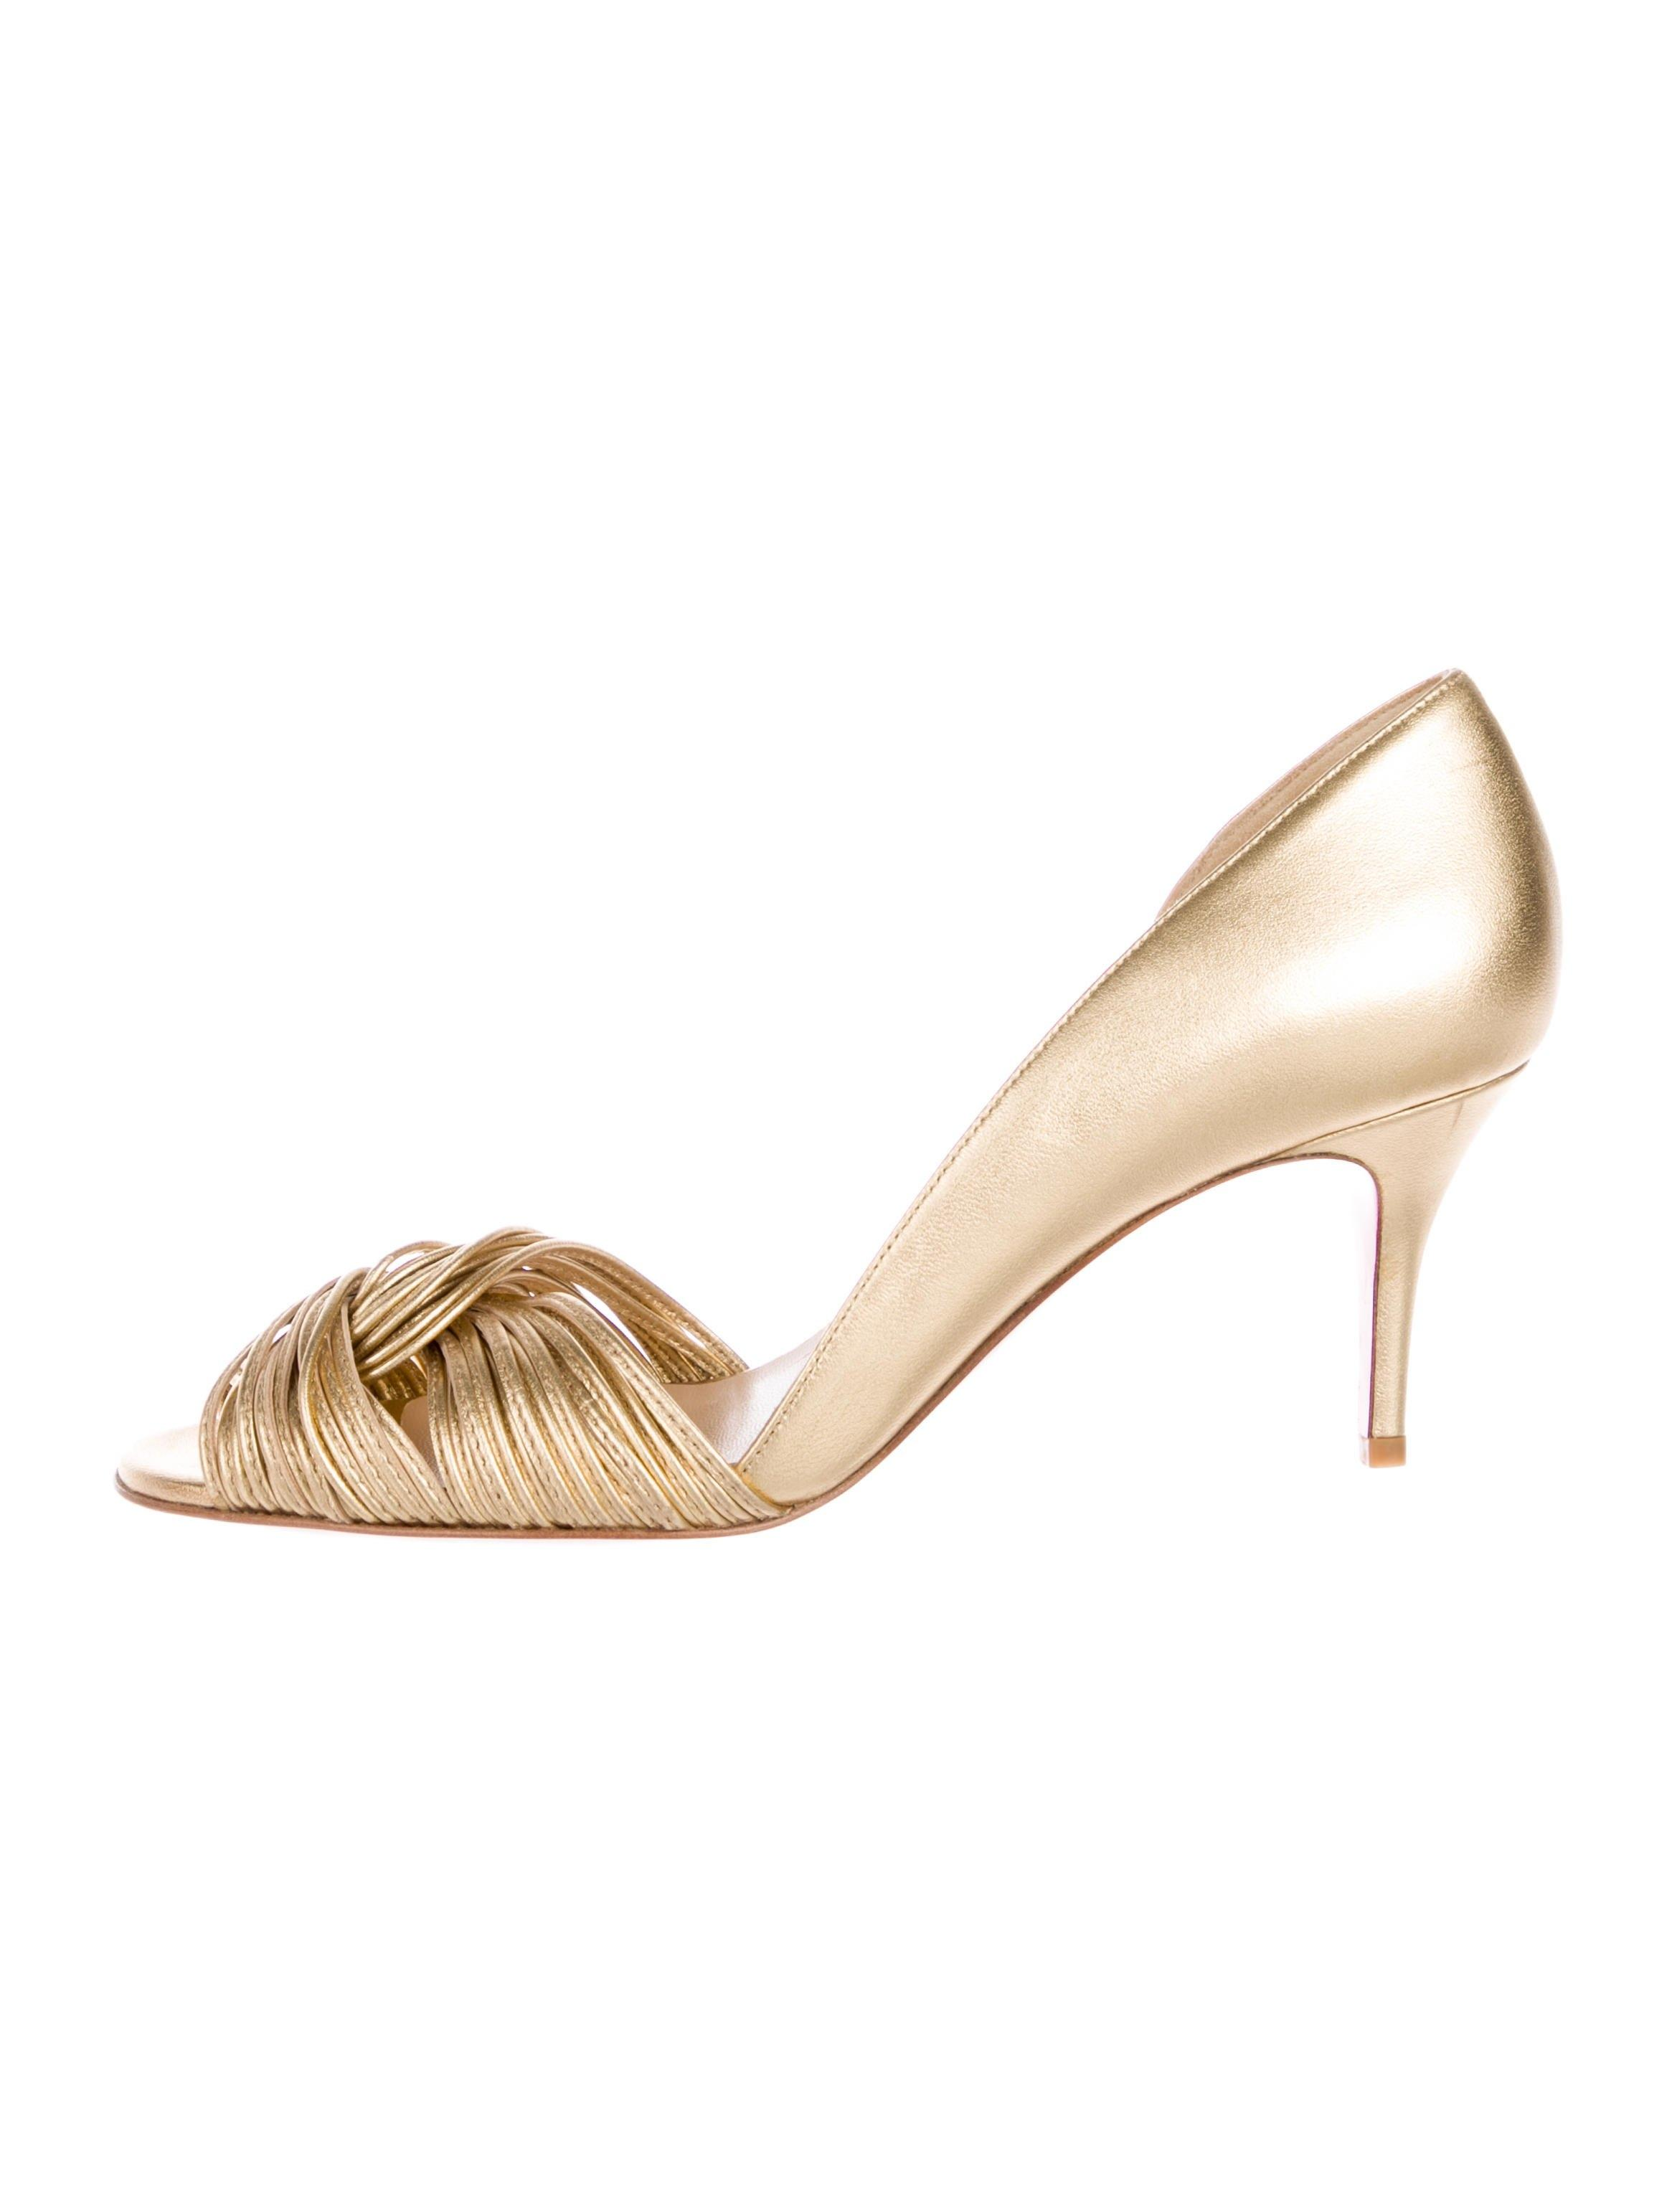 96e2d6112048 ... Christian Christian Christian Louboutin New Metallic Leather D-orsay 8 Pumps  Size EU 38 ...